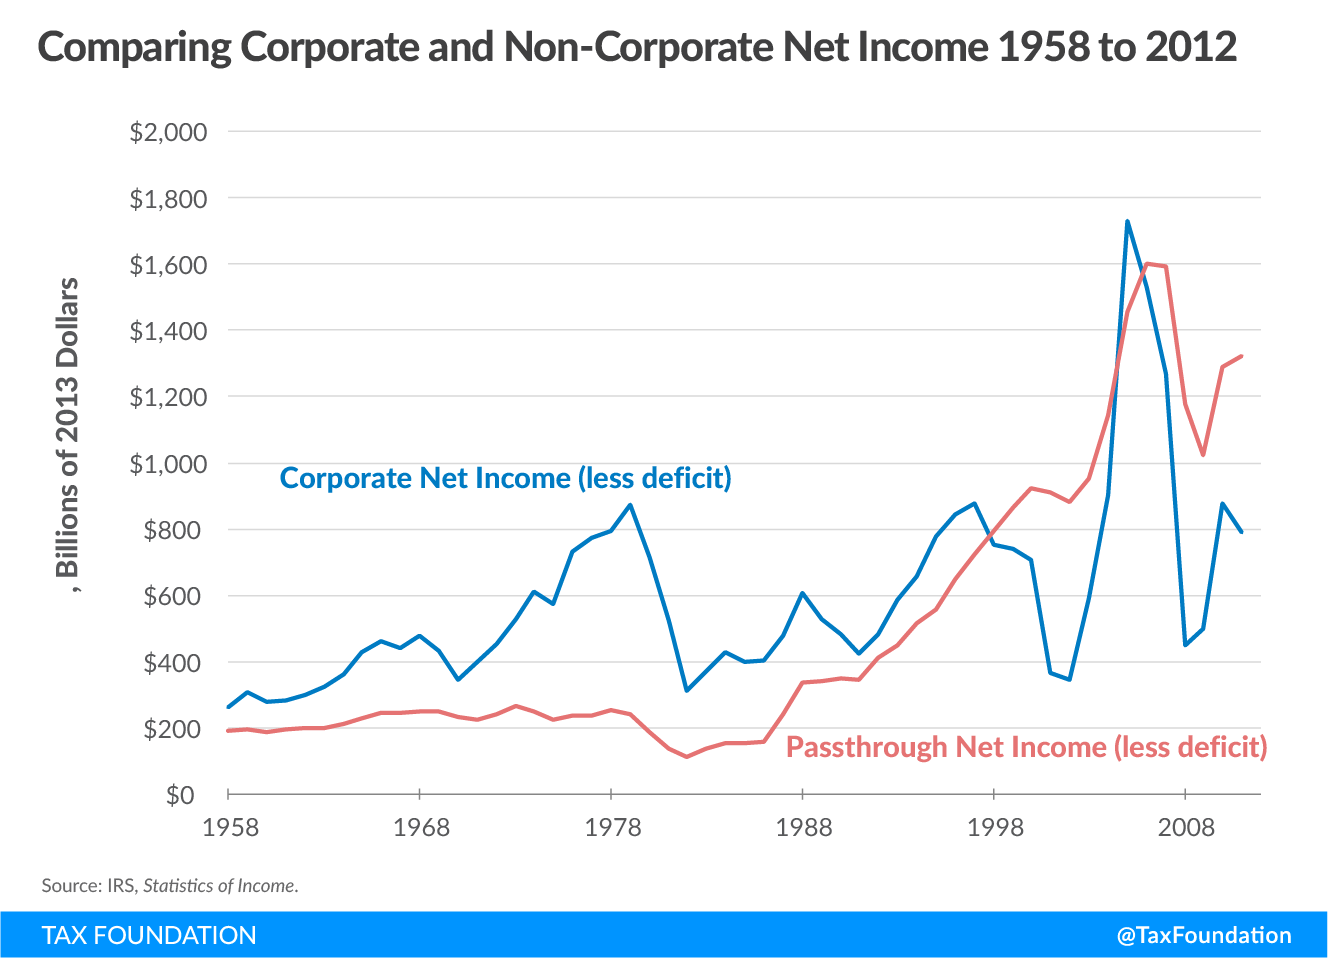 Comparing corporate and non-corporate net income 1958 to 2012, U.S. progressive tax code, income inequality, saez and zucman, 70 percent tax rate income tax inequality